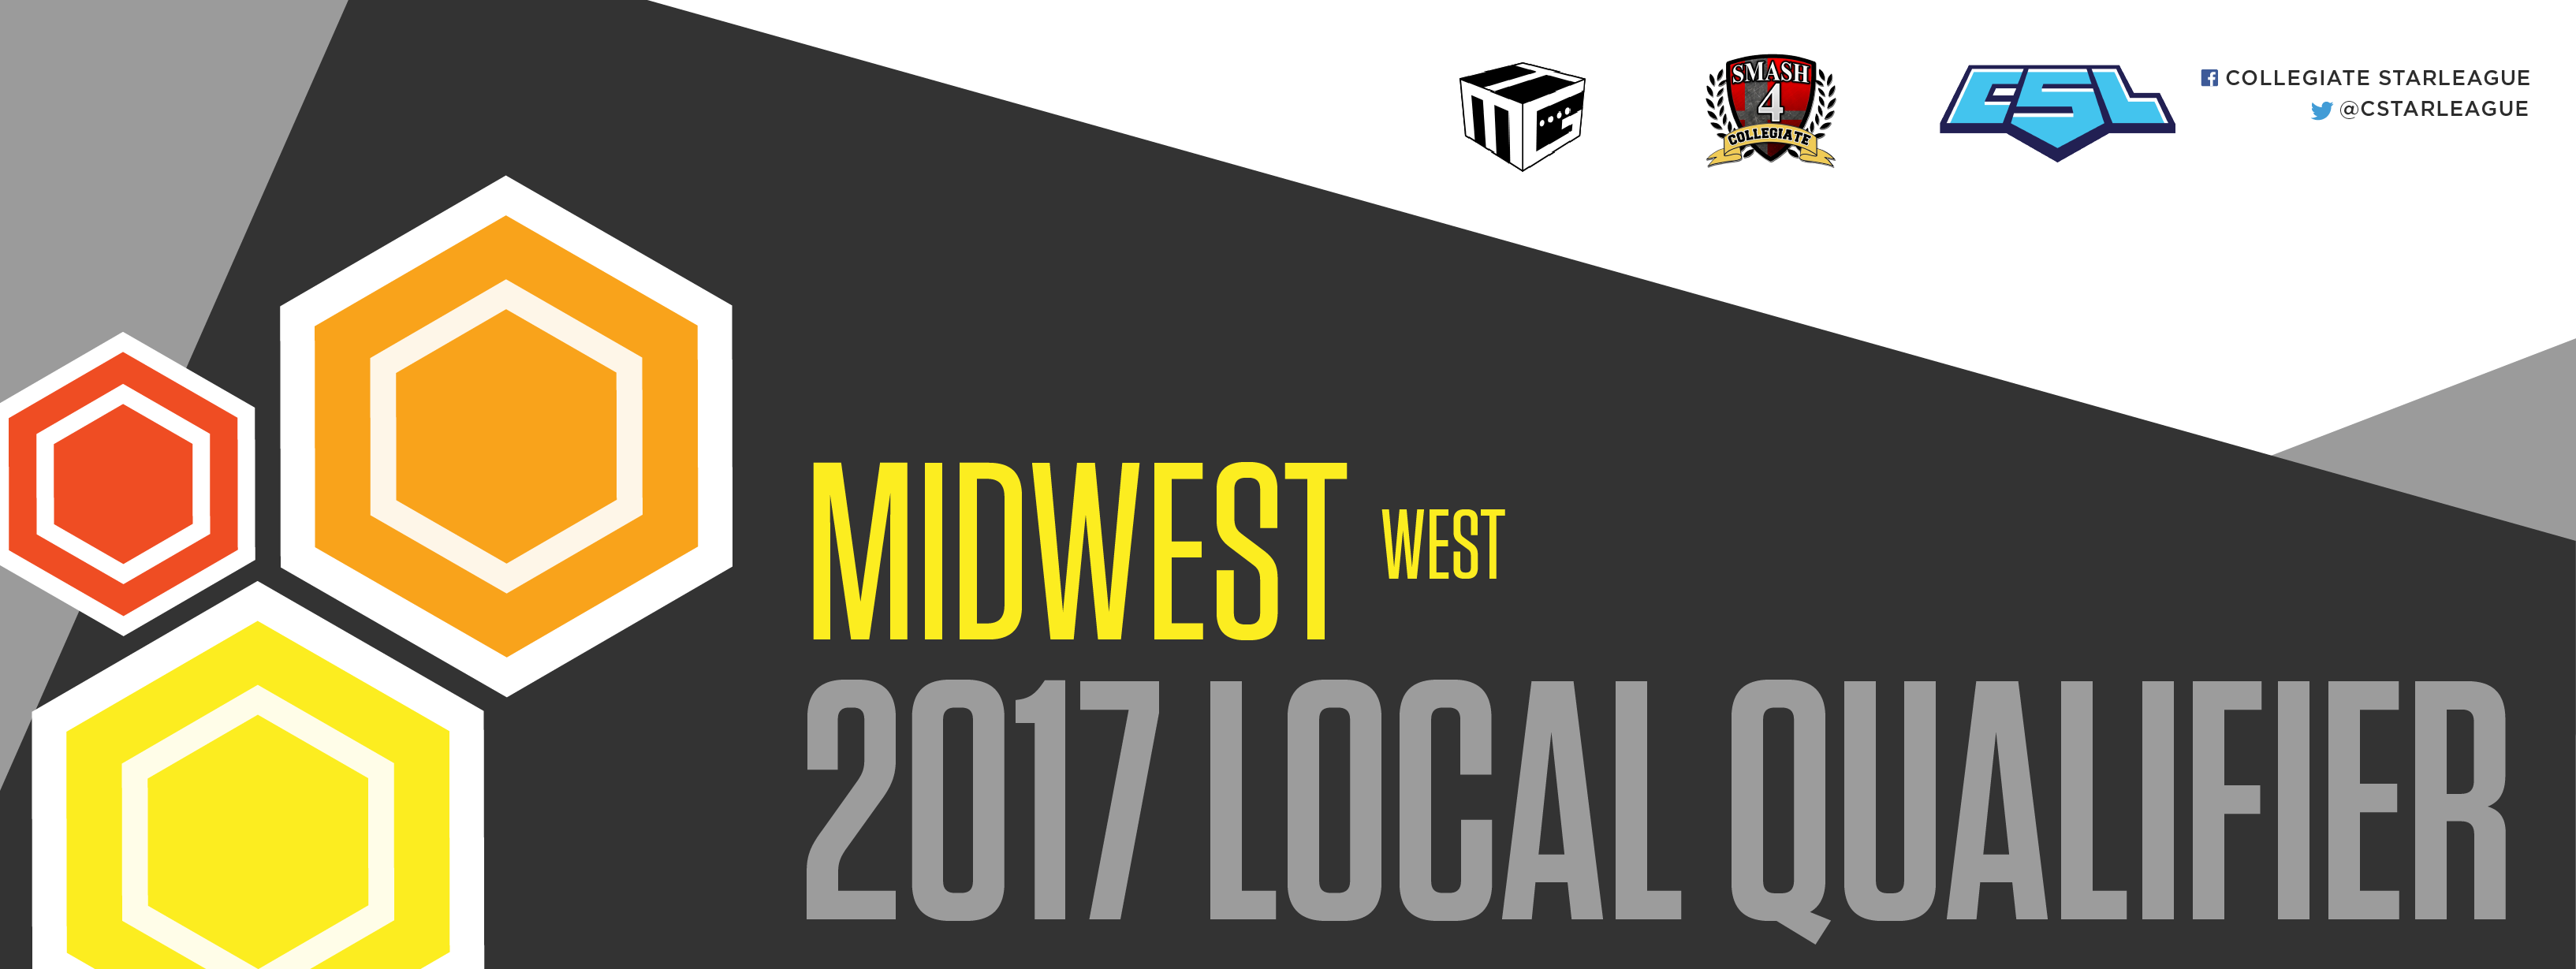 Midwest west 01